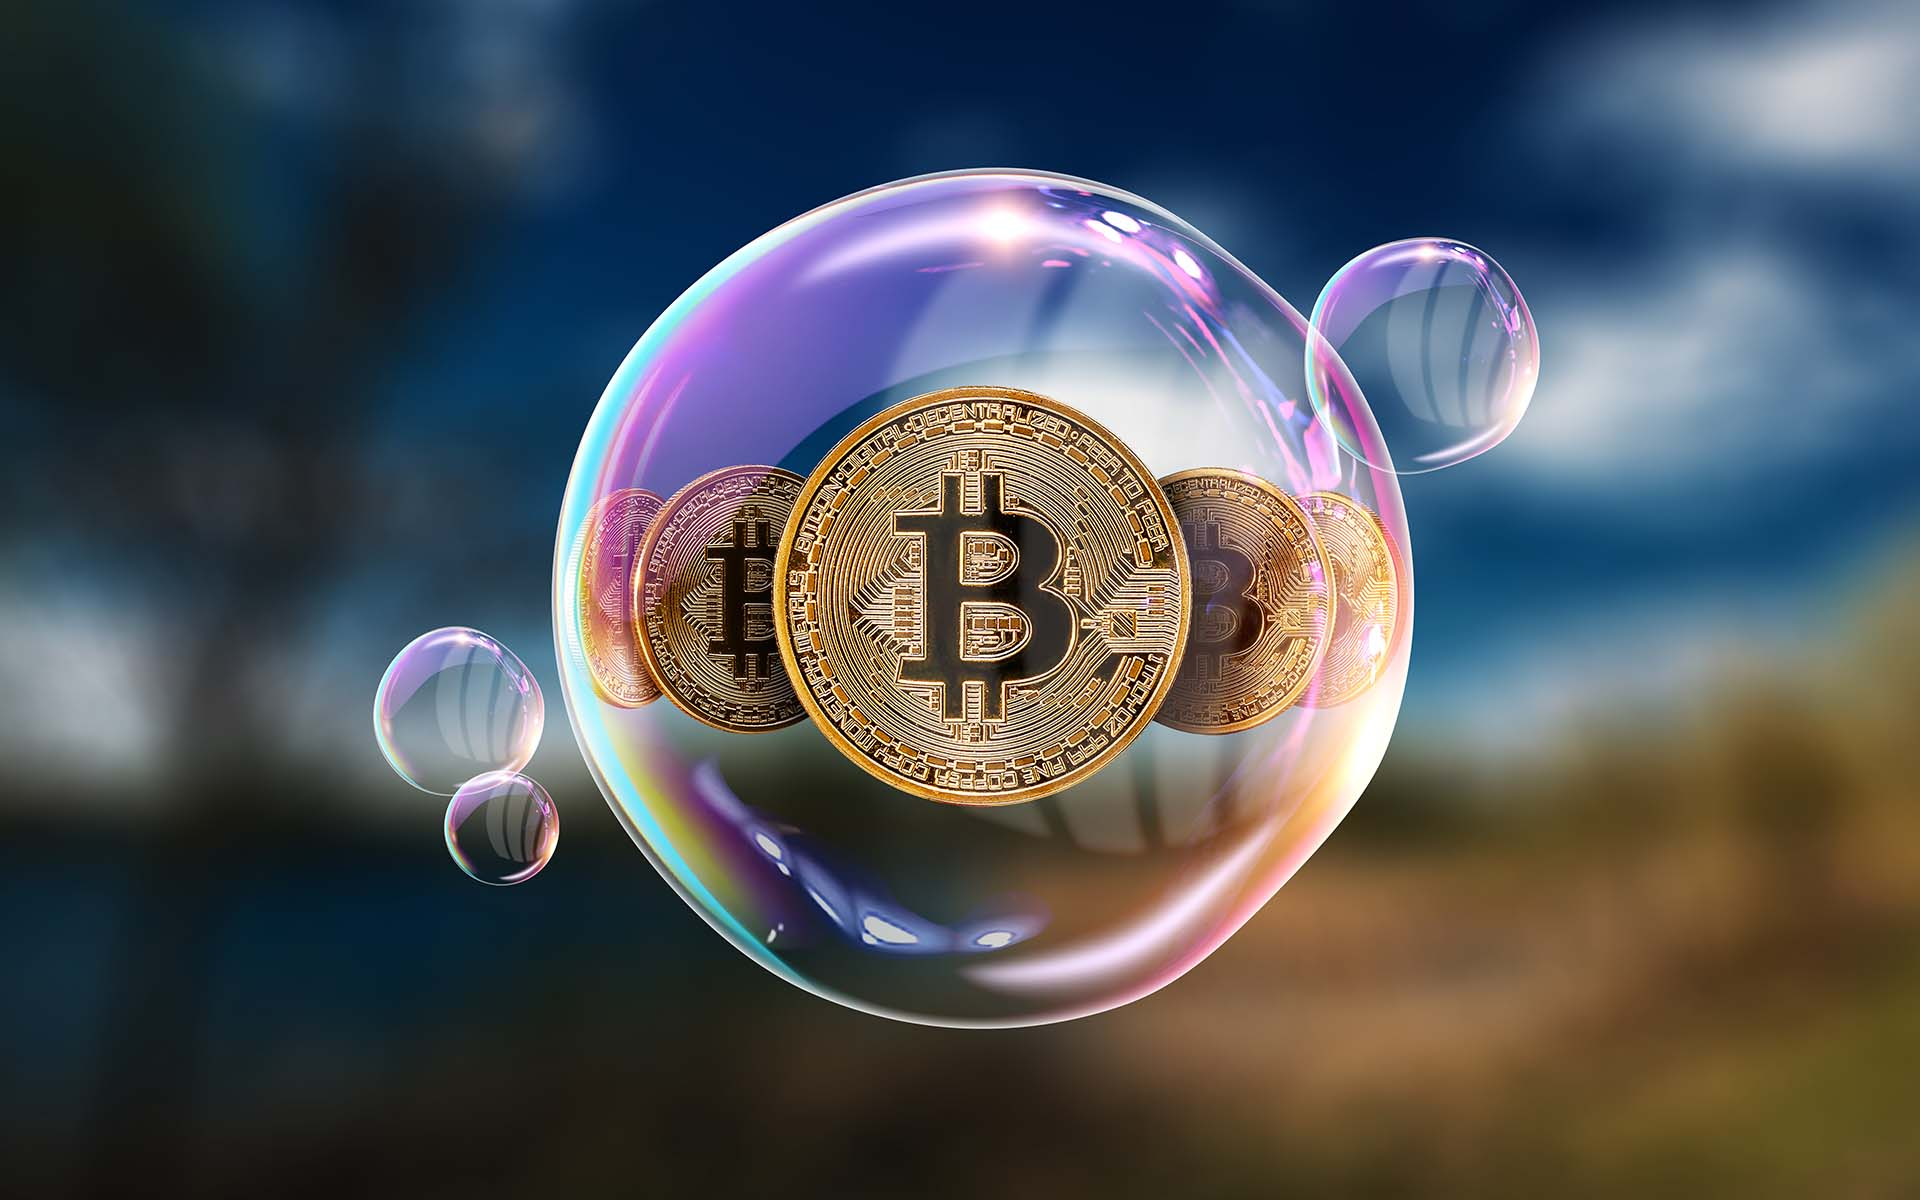 ss-bitcoin-bubble.